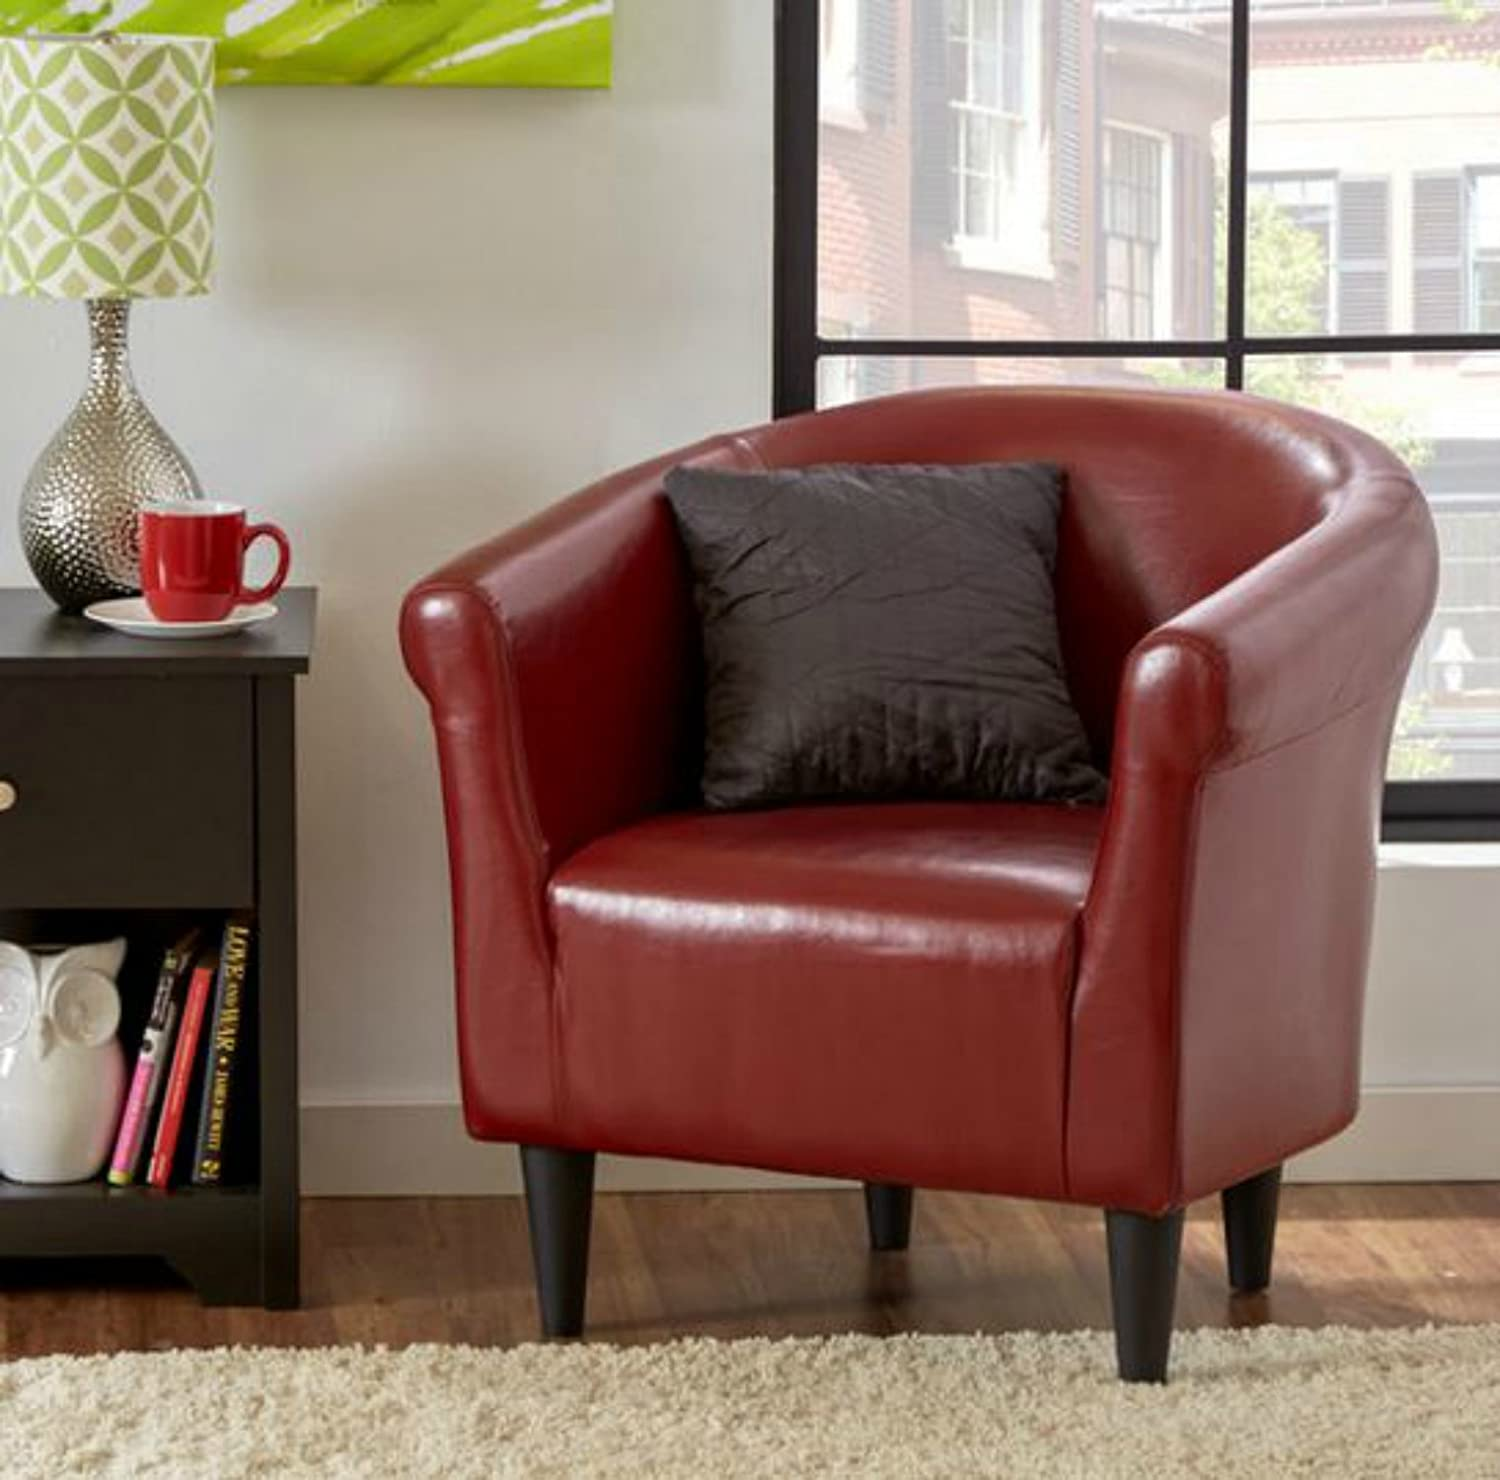 Zipcode Contemporary Club Chair Merlot